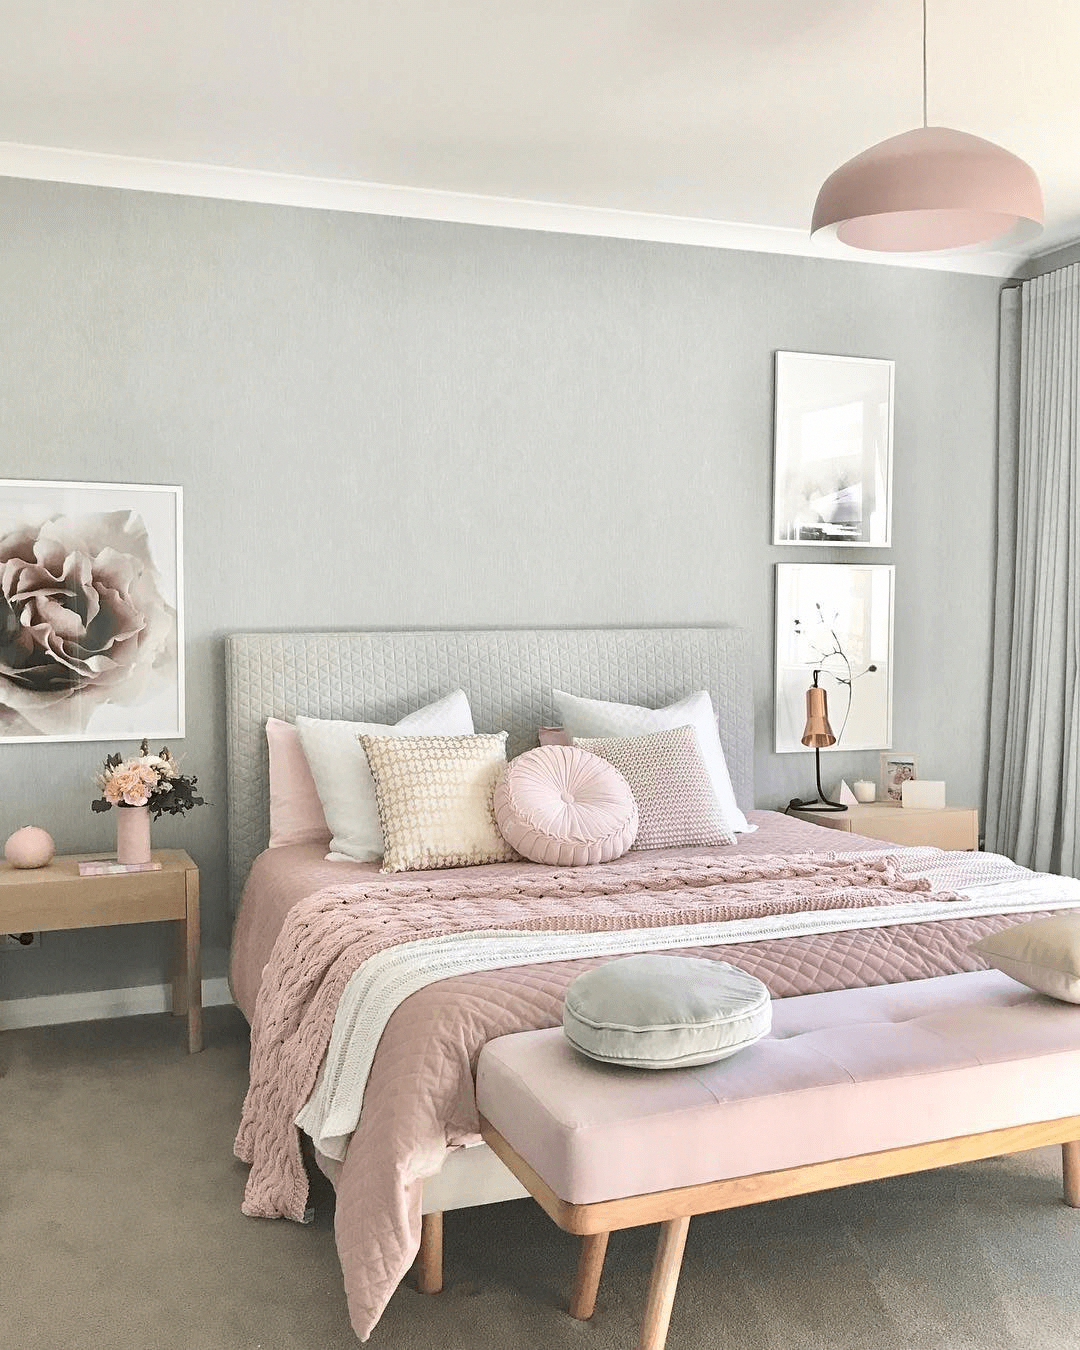 pastel color bedroom colour palettes for couples home decor bedroom pink bedroom design on grey and light pink bedroom decorating ideas id=42489